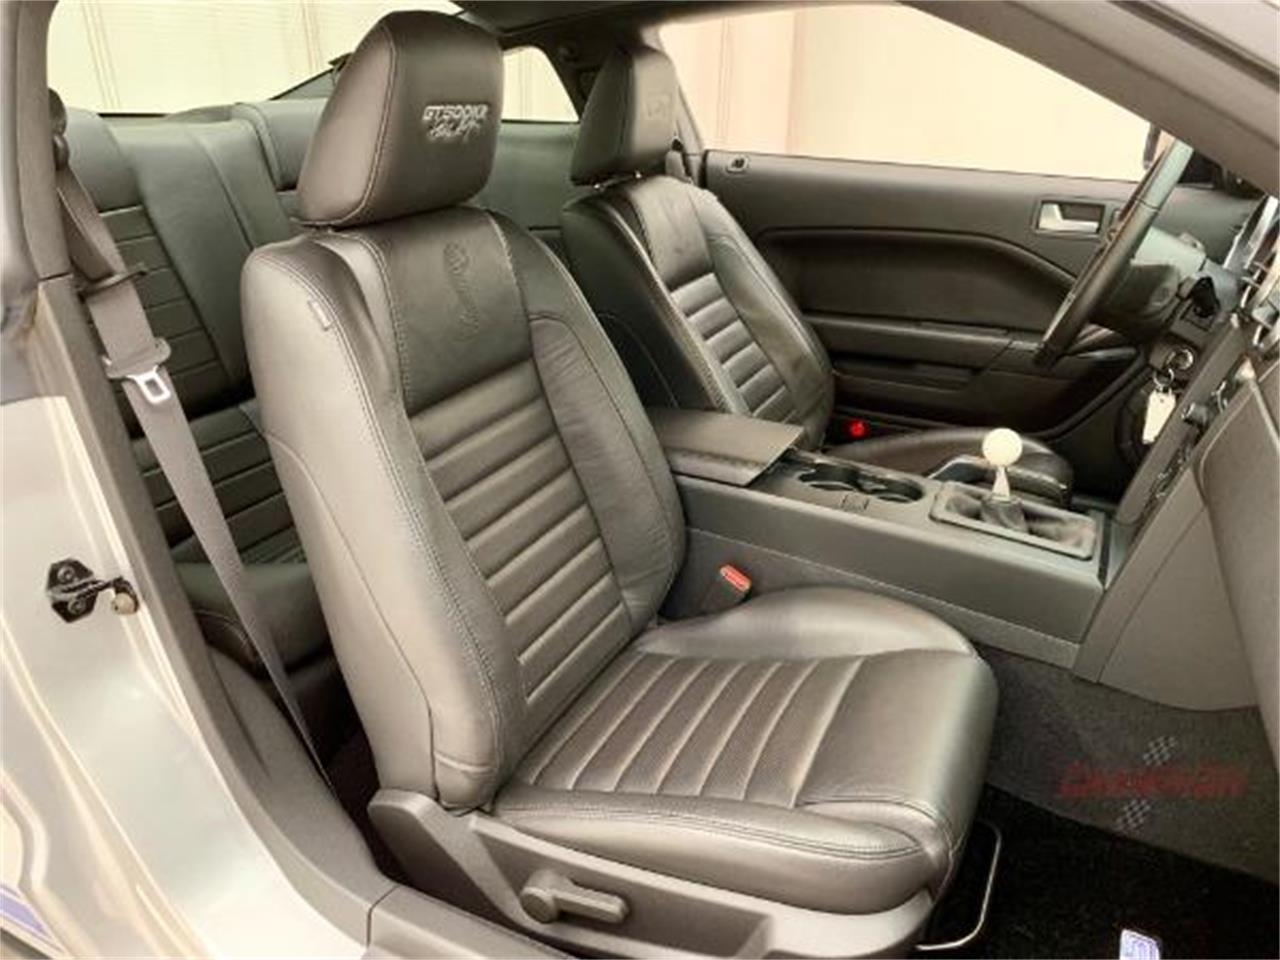 2009 Shelby Mustang for sale in Syosset, NY – photo 29